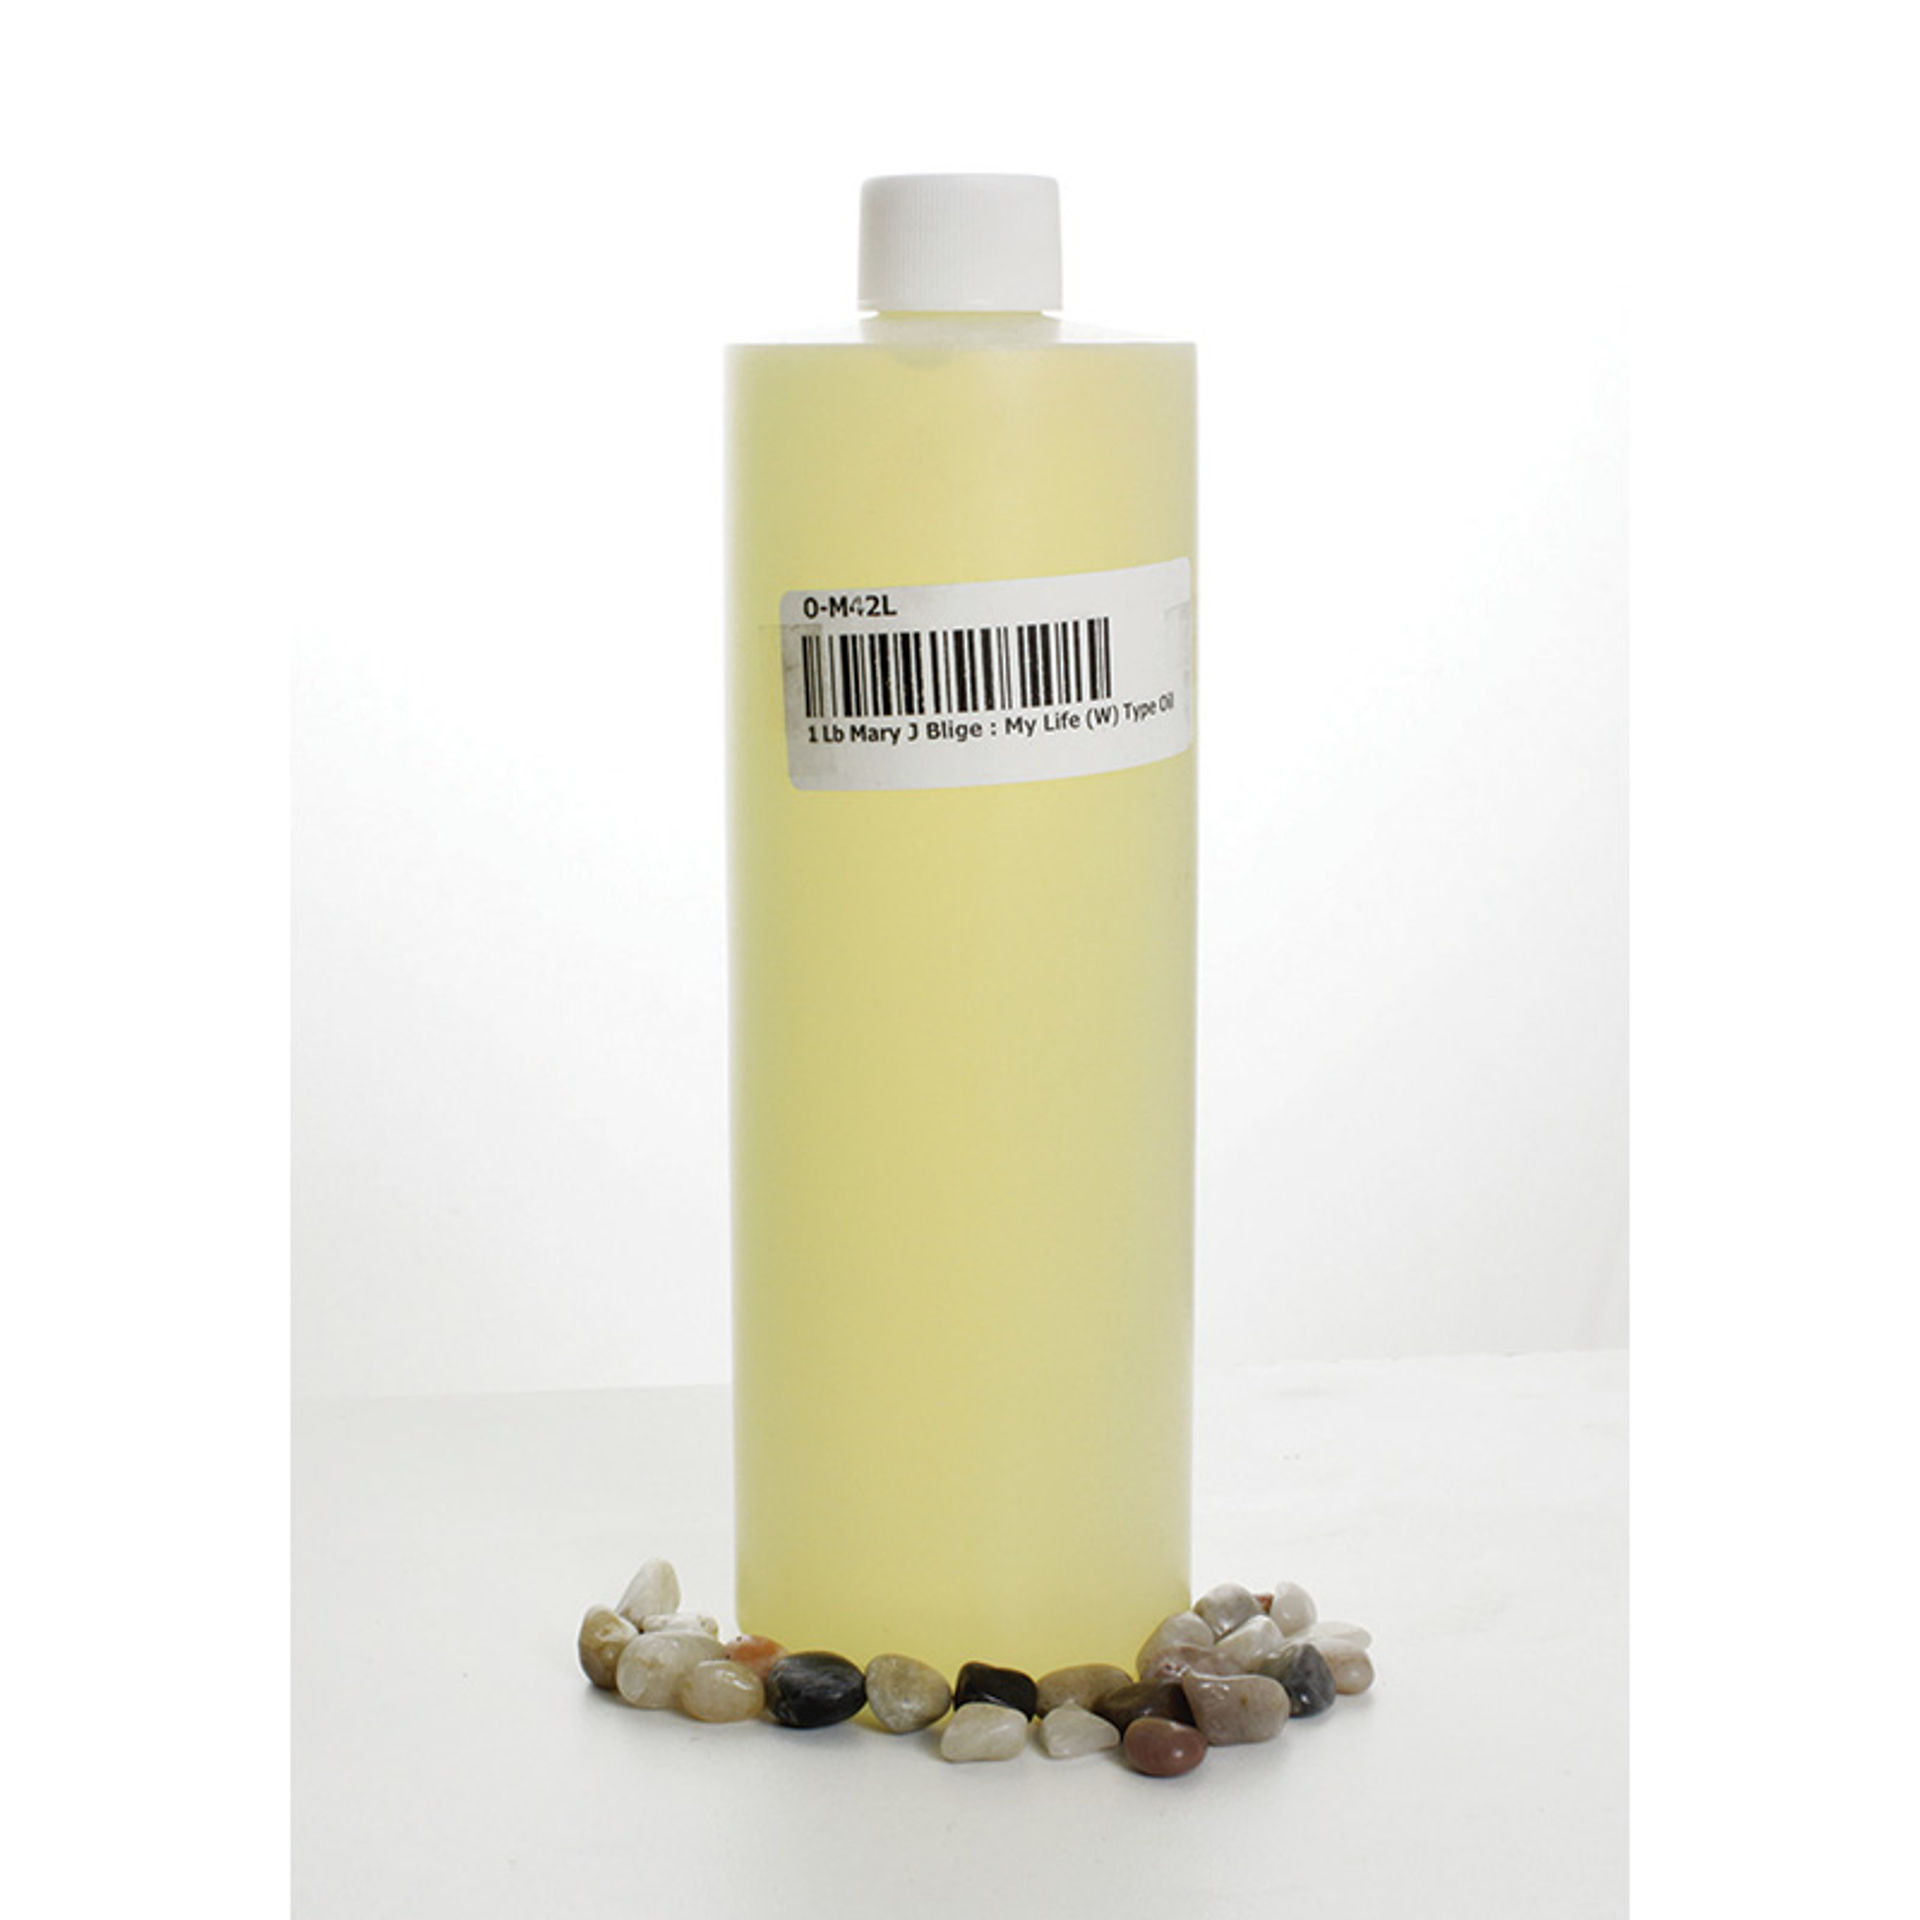 Picture of 1 Lb Mary J Blige: My Life (W) Type Oil